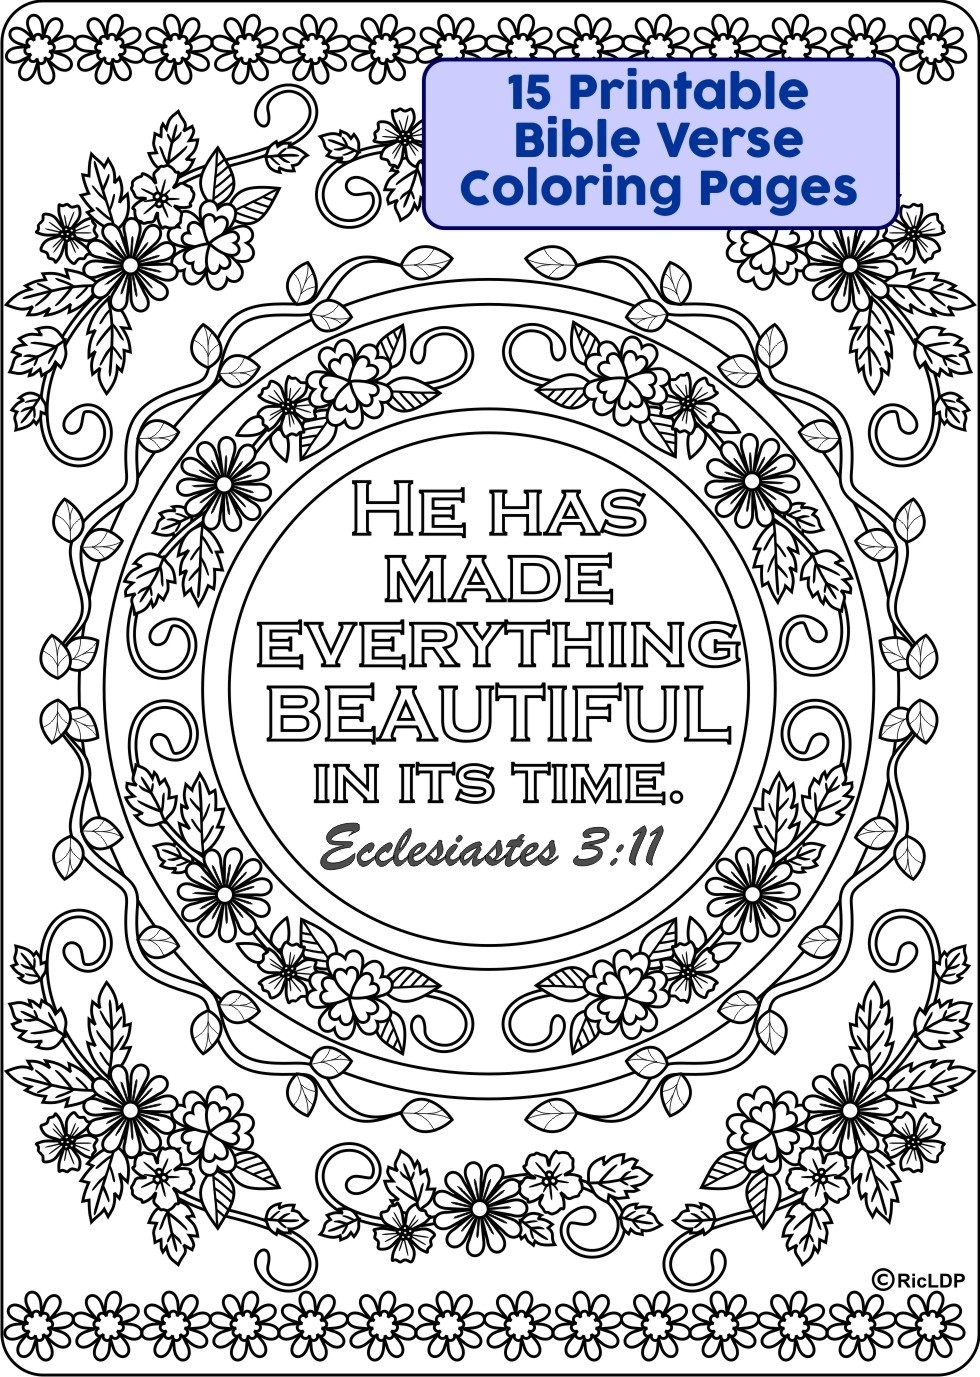 Free Printable Bible Verse Coloring Pages Mini Cards – Dialogueeurope | 1377x980